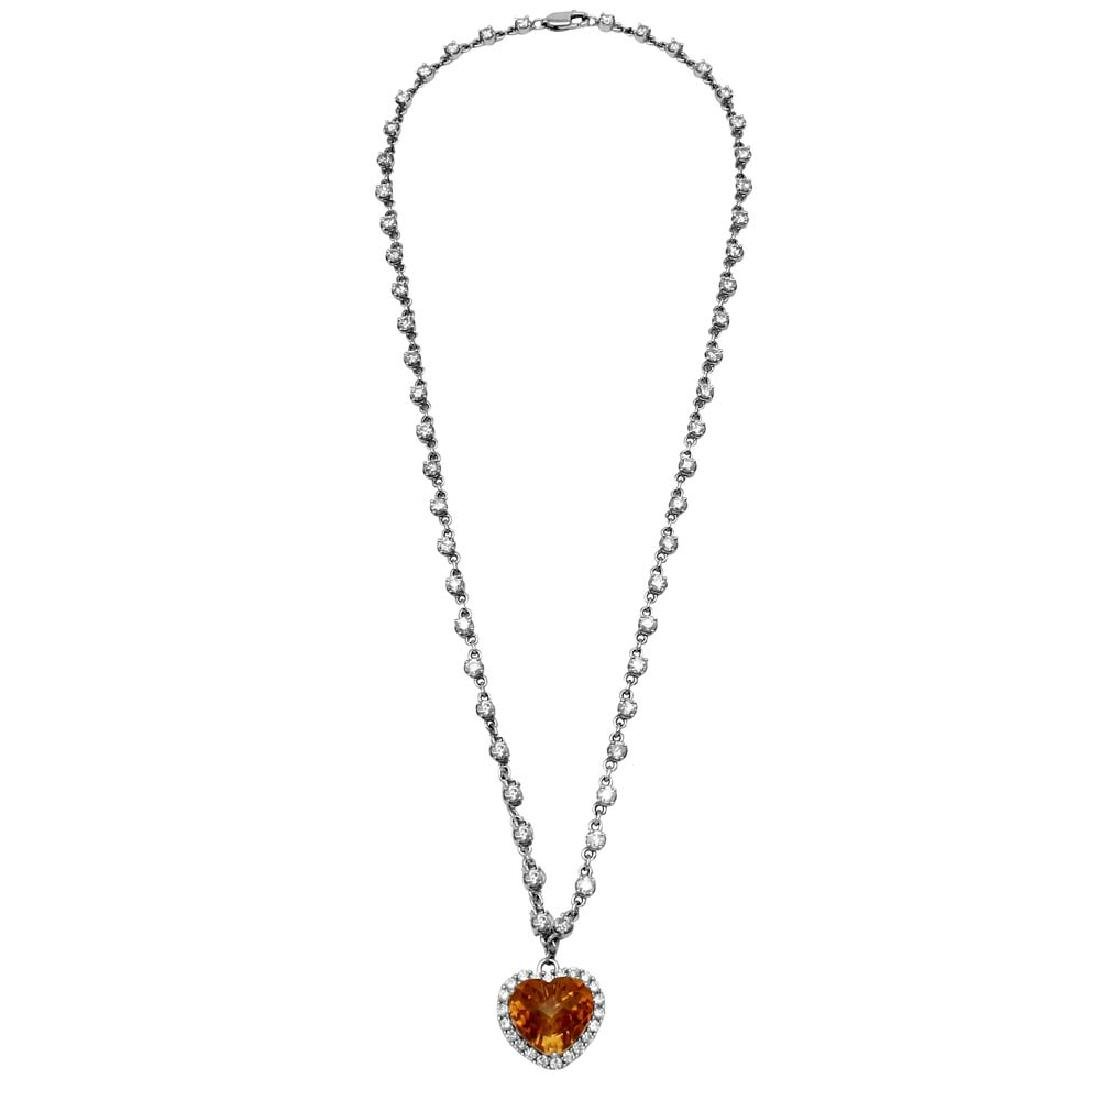 14KT White Gold 5.89ct Citrine and Diamond Necklace